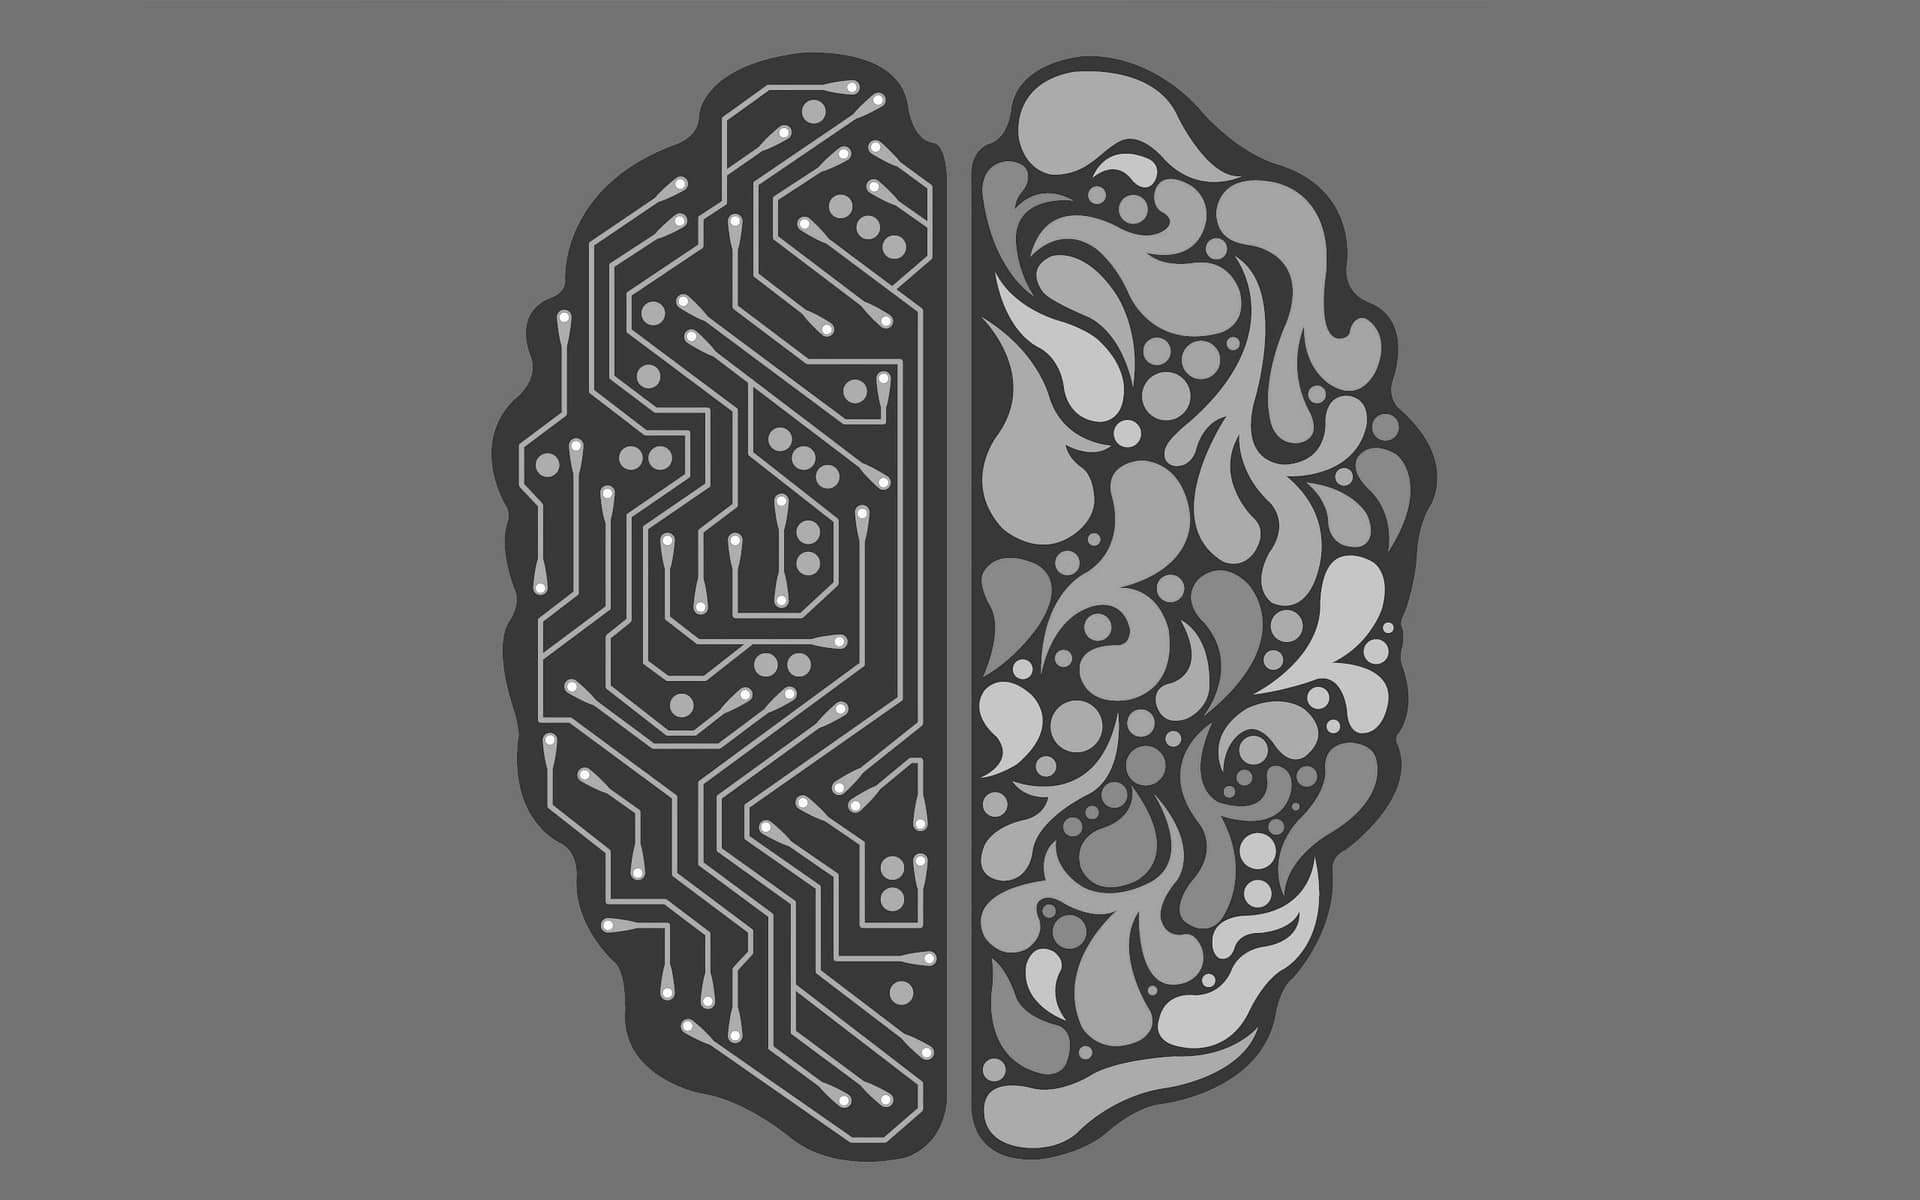 Illustration of a brain, with half depicted as a circuit board.